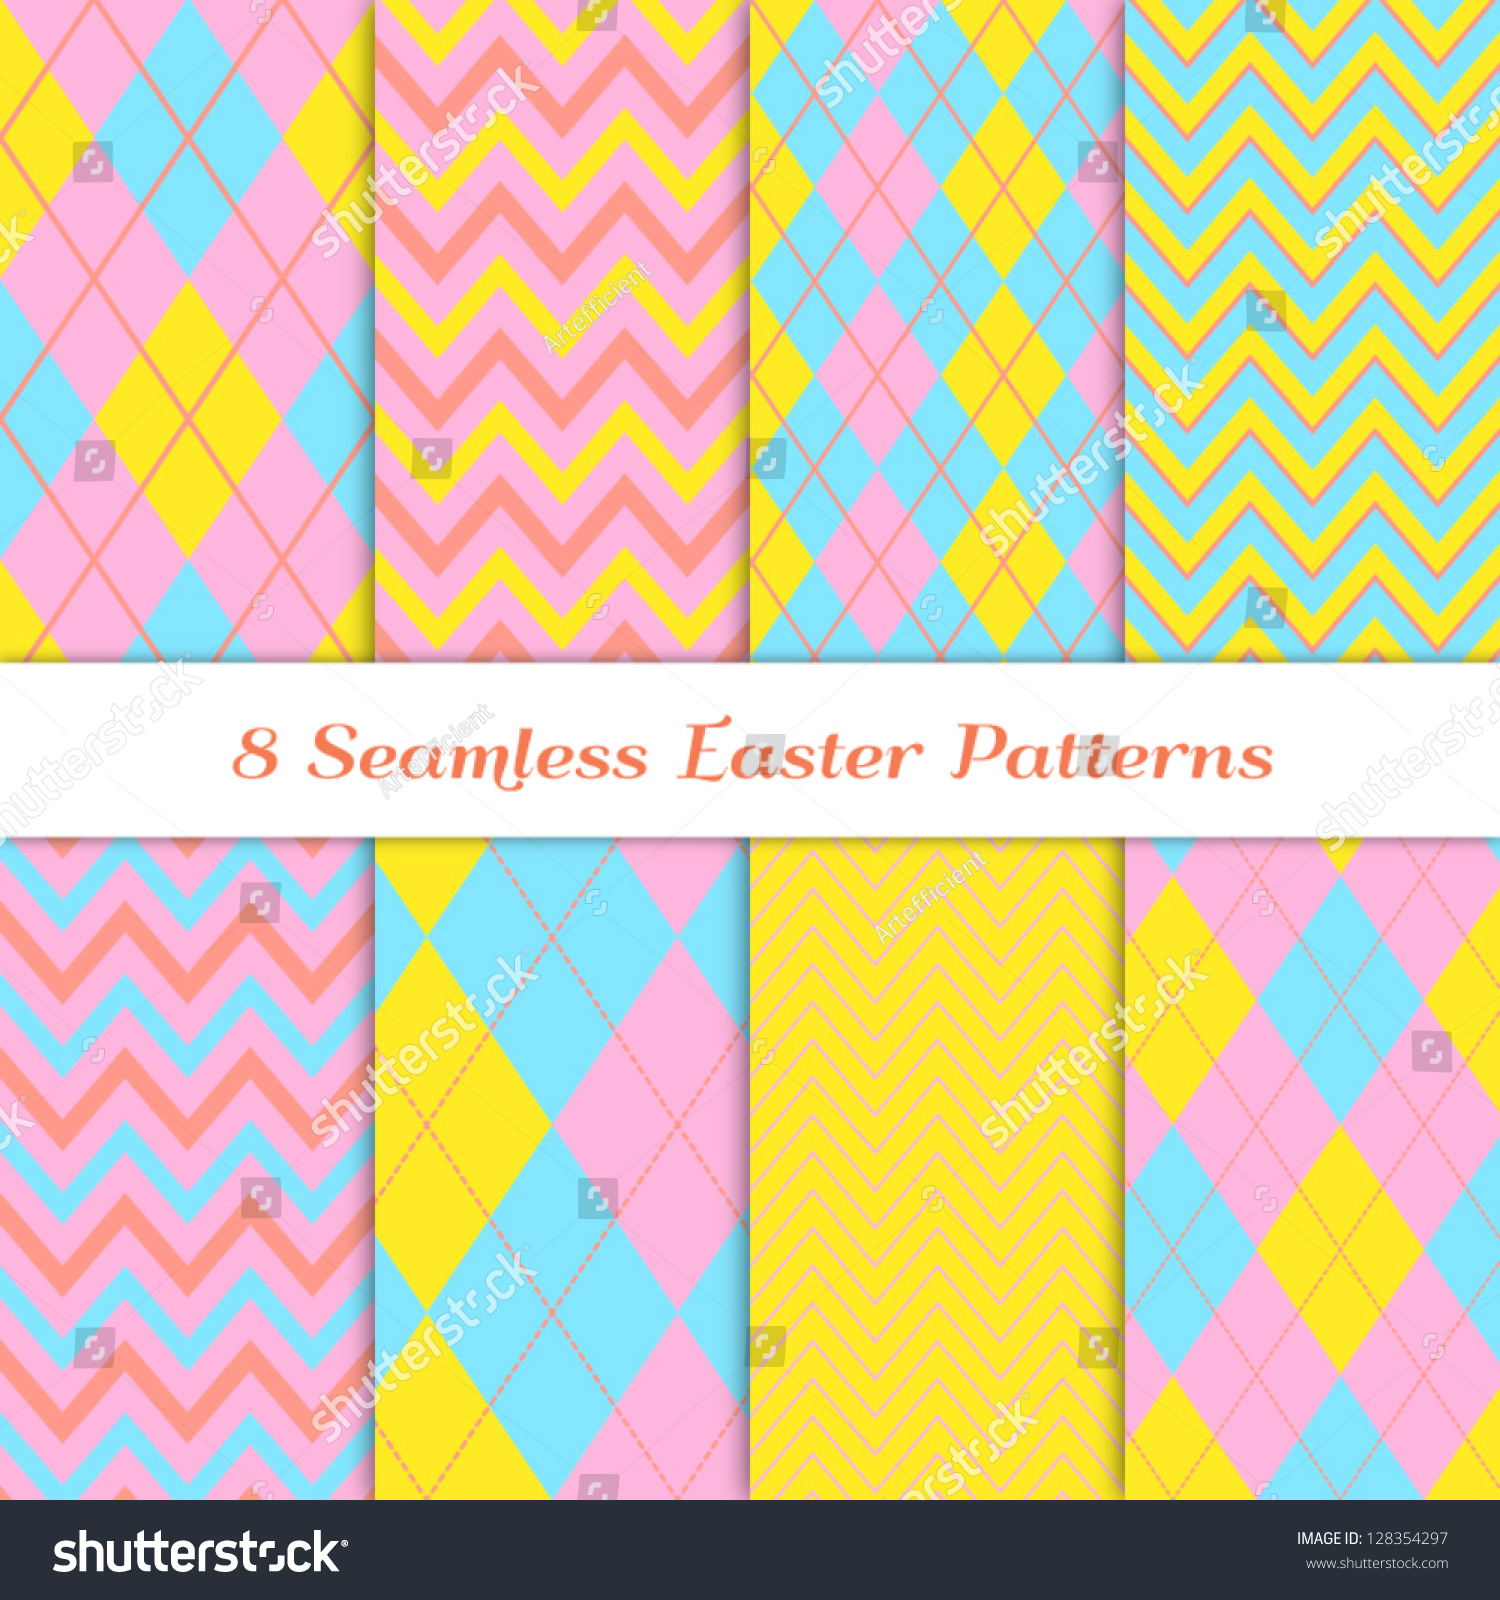 Yellow chevron background